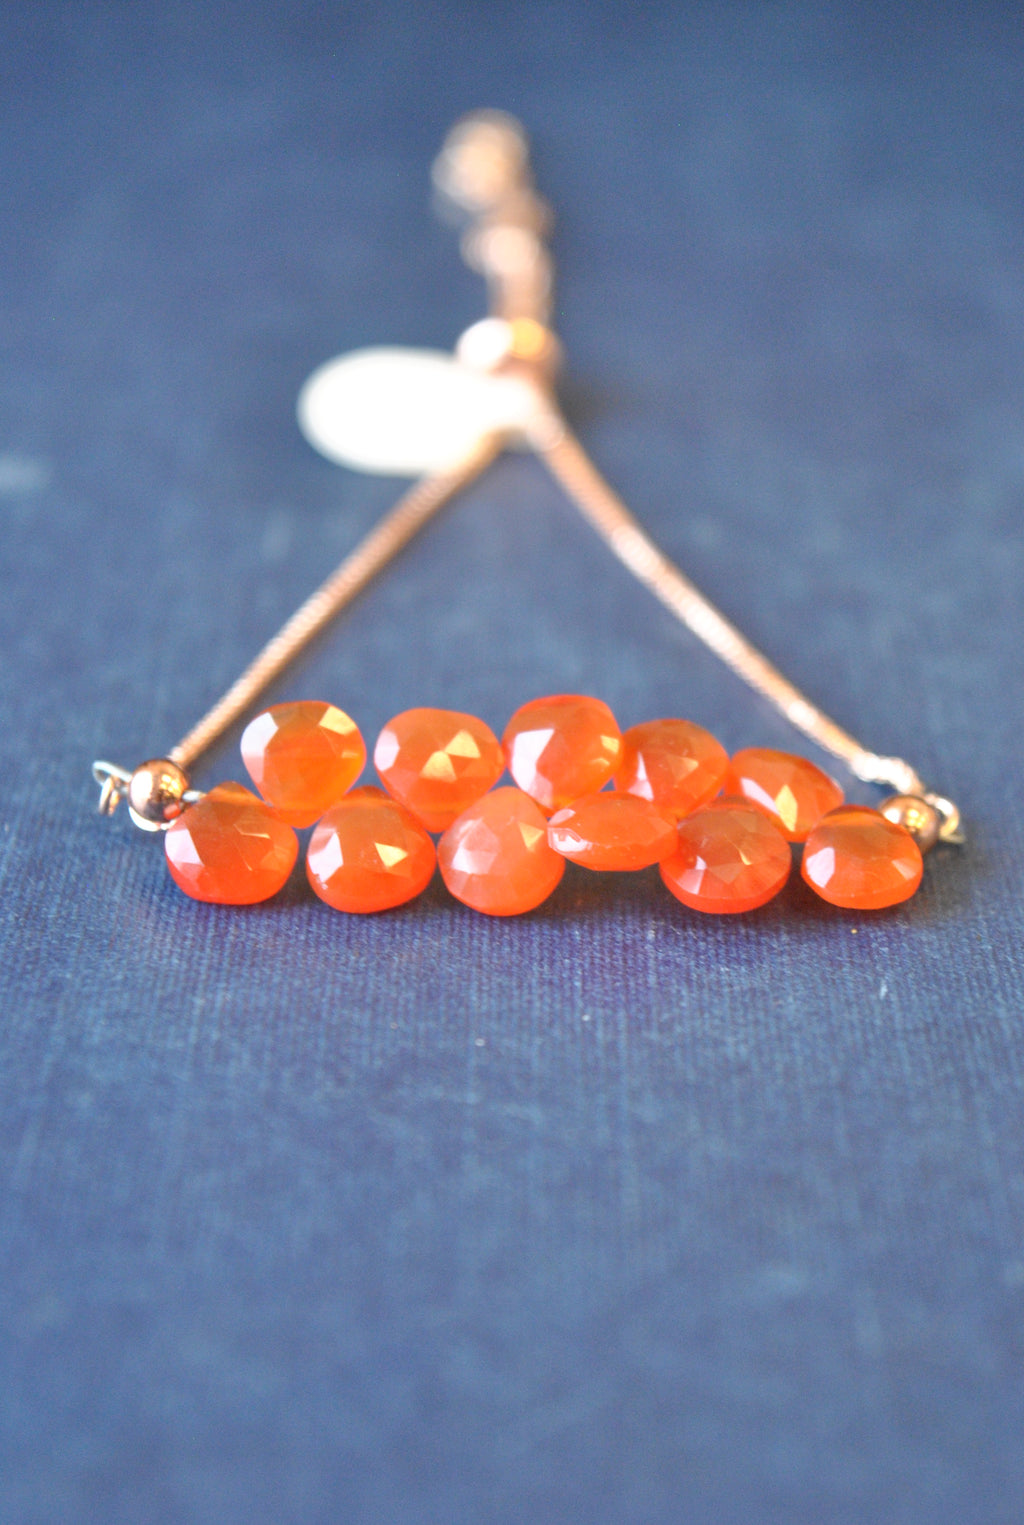 ORANGE CARNELIAN TEARDROPS ADJUSTABLE DELICATE BRACELET